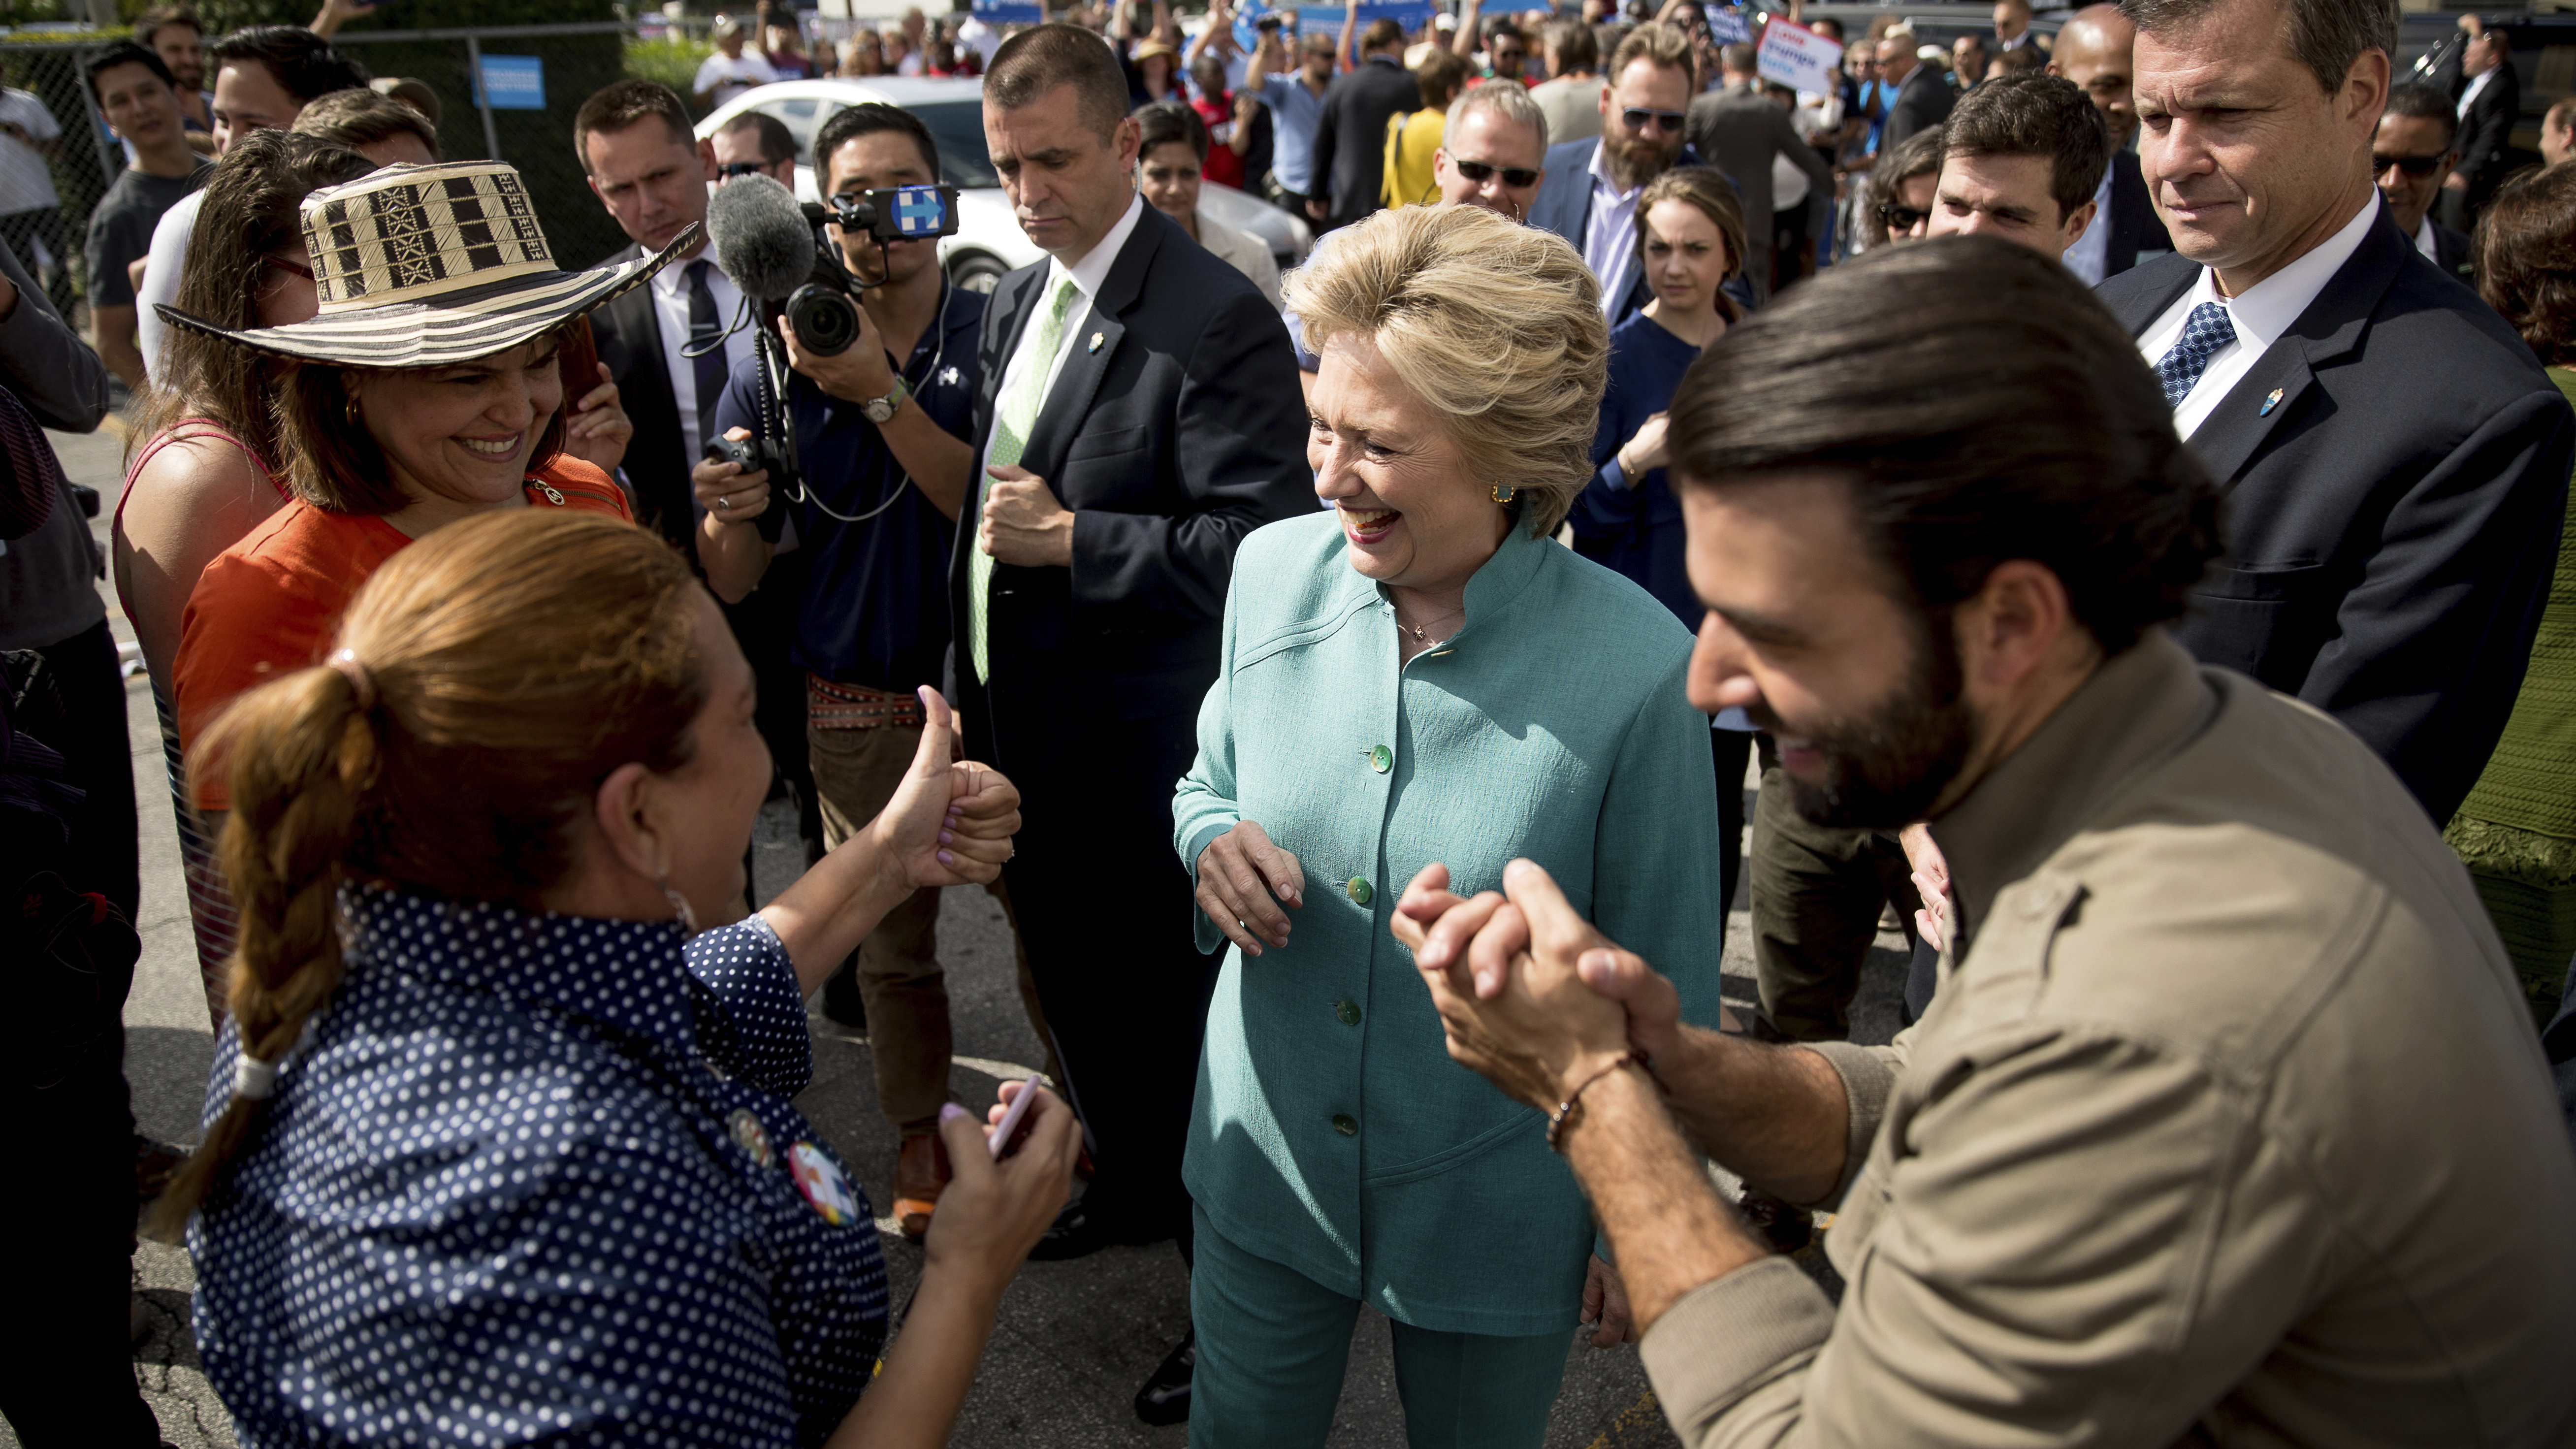 Hillary Clinton campaigned in Florida on Saturday. Hispanic voters may decide who wins there.